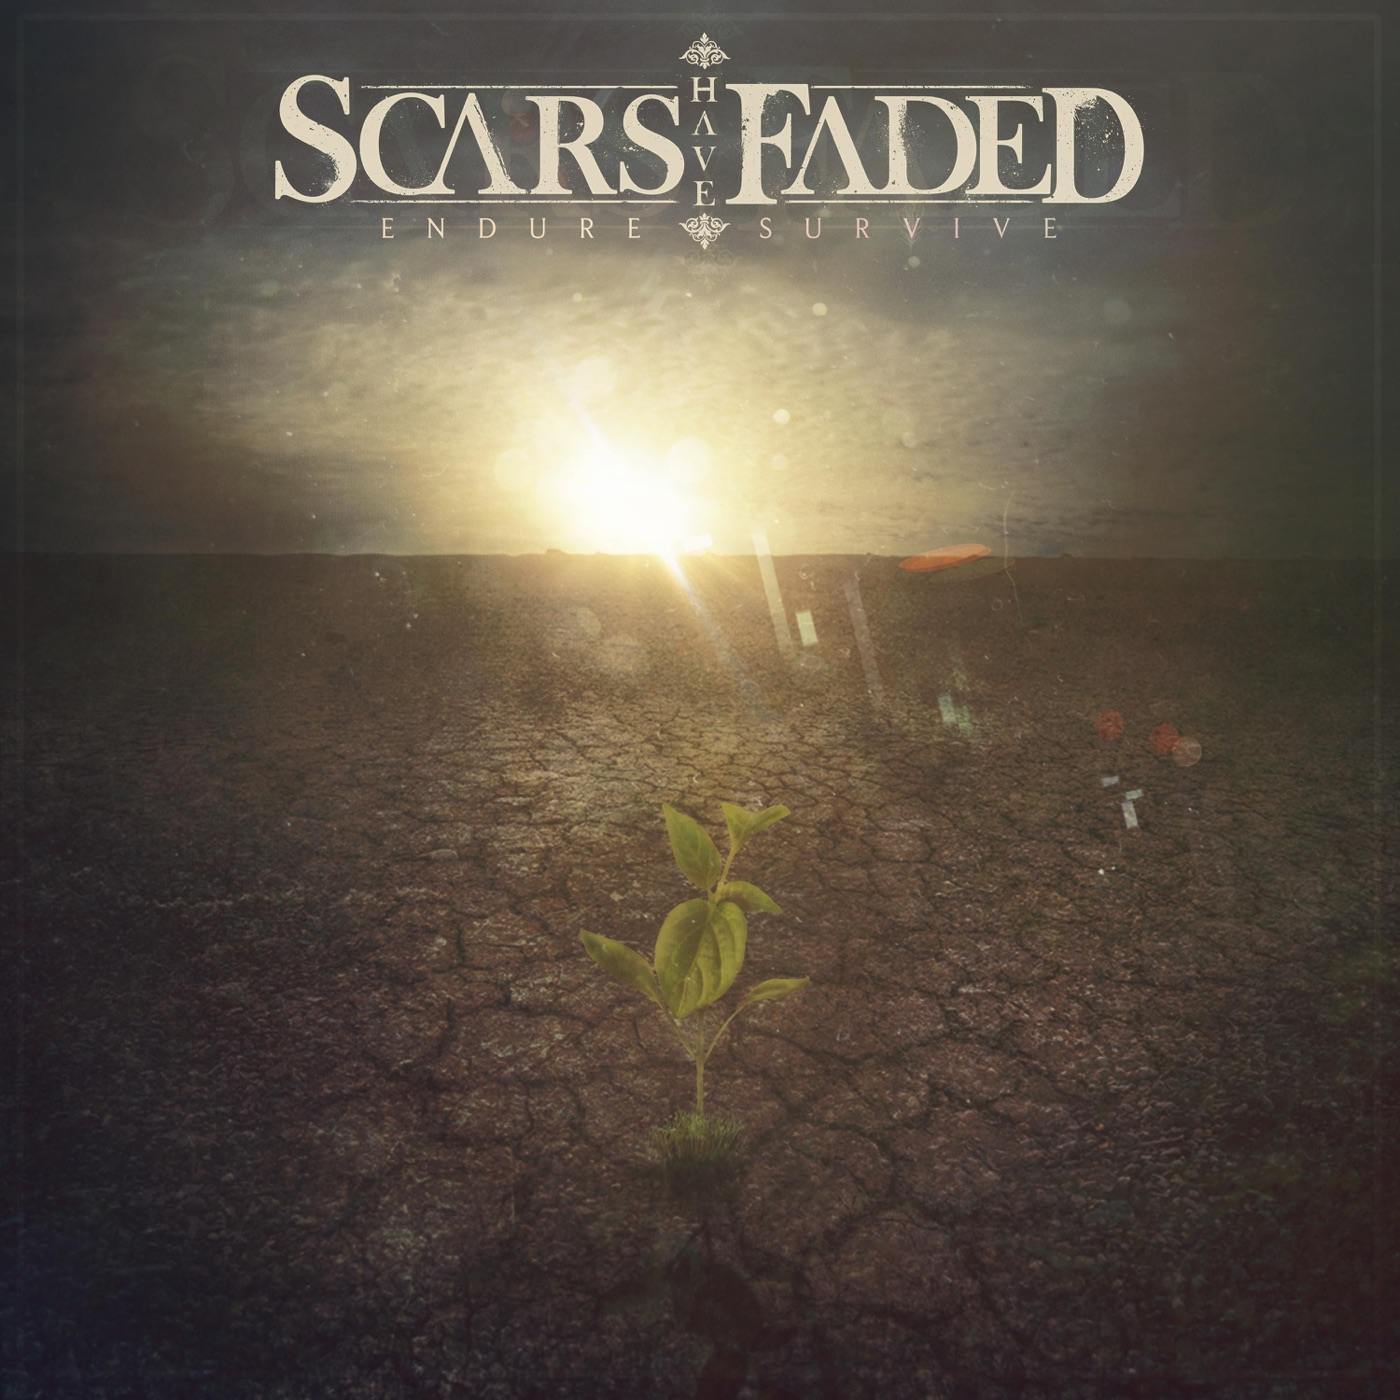 Scars Have Faded - Endure, Survive [EP] (2016)